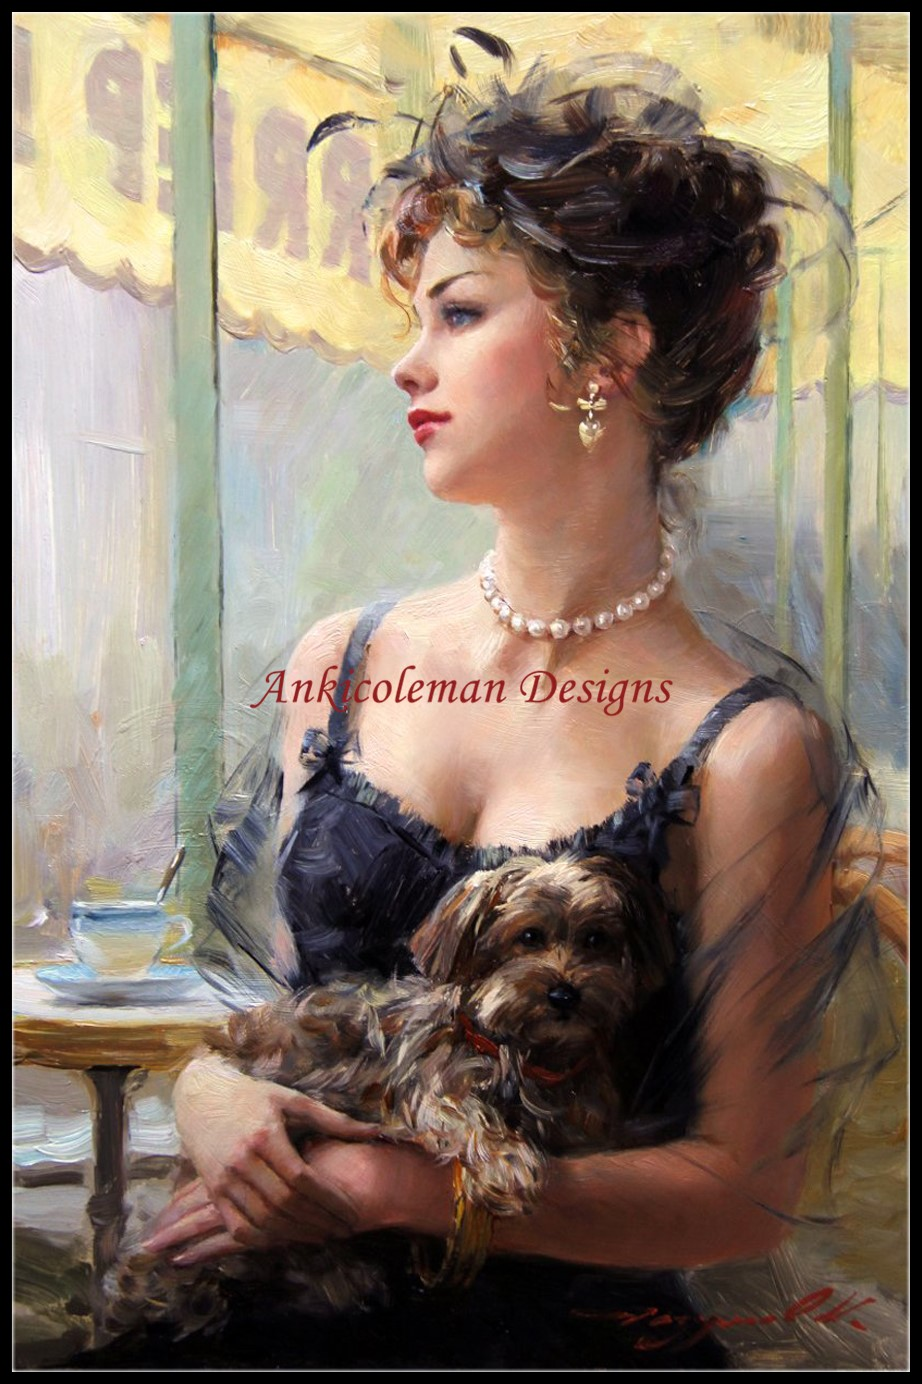 Needlework for embroidery DIY Crafts DMC Color High Quality - Counted Cross Stitch Kits 14 ct Oil painting - Waiting GirlNeedlework for embroidery DIY Crafts DMC Color High Quality - Counted Cross Stitch Kits 14 ct Oil painting - Waiting Girl